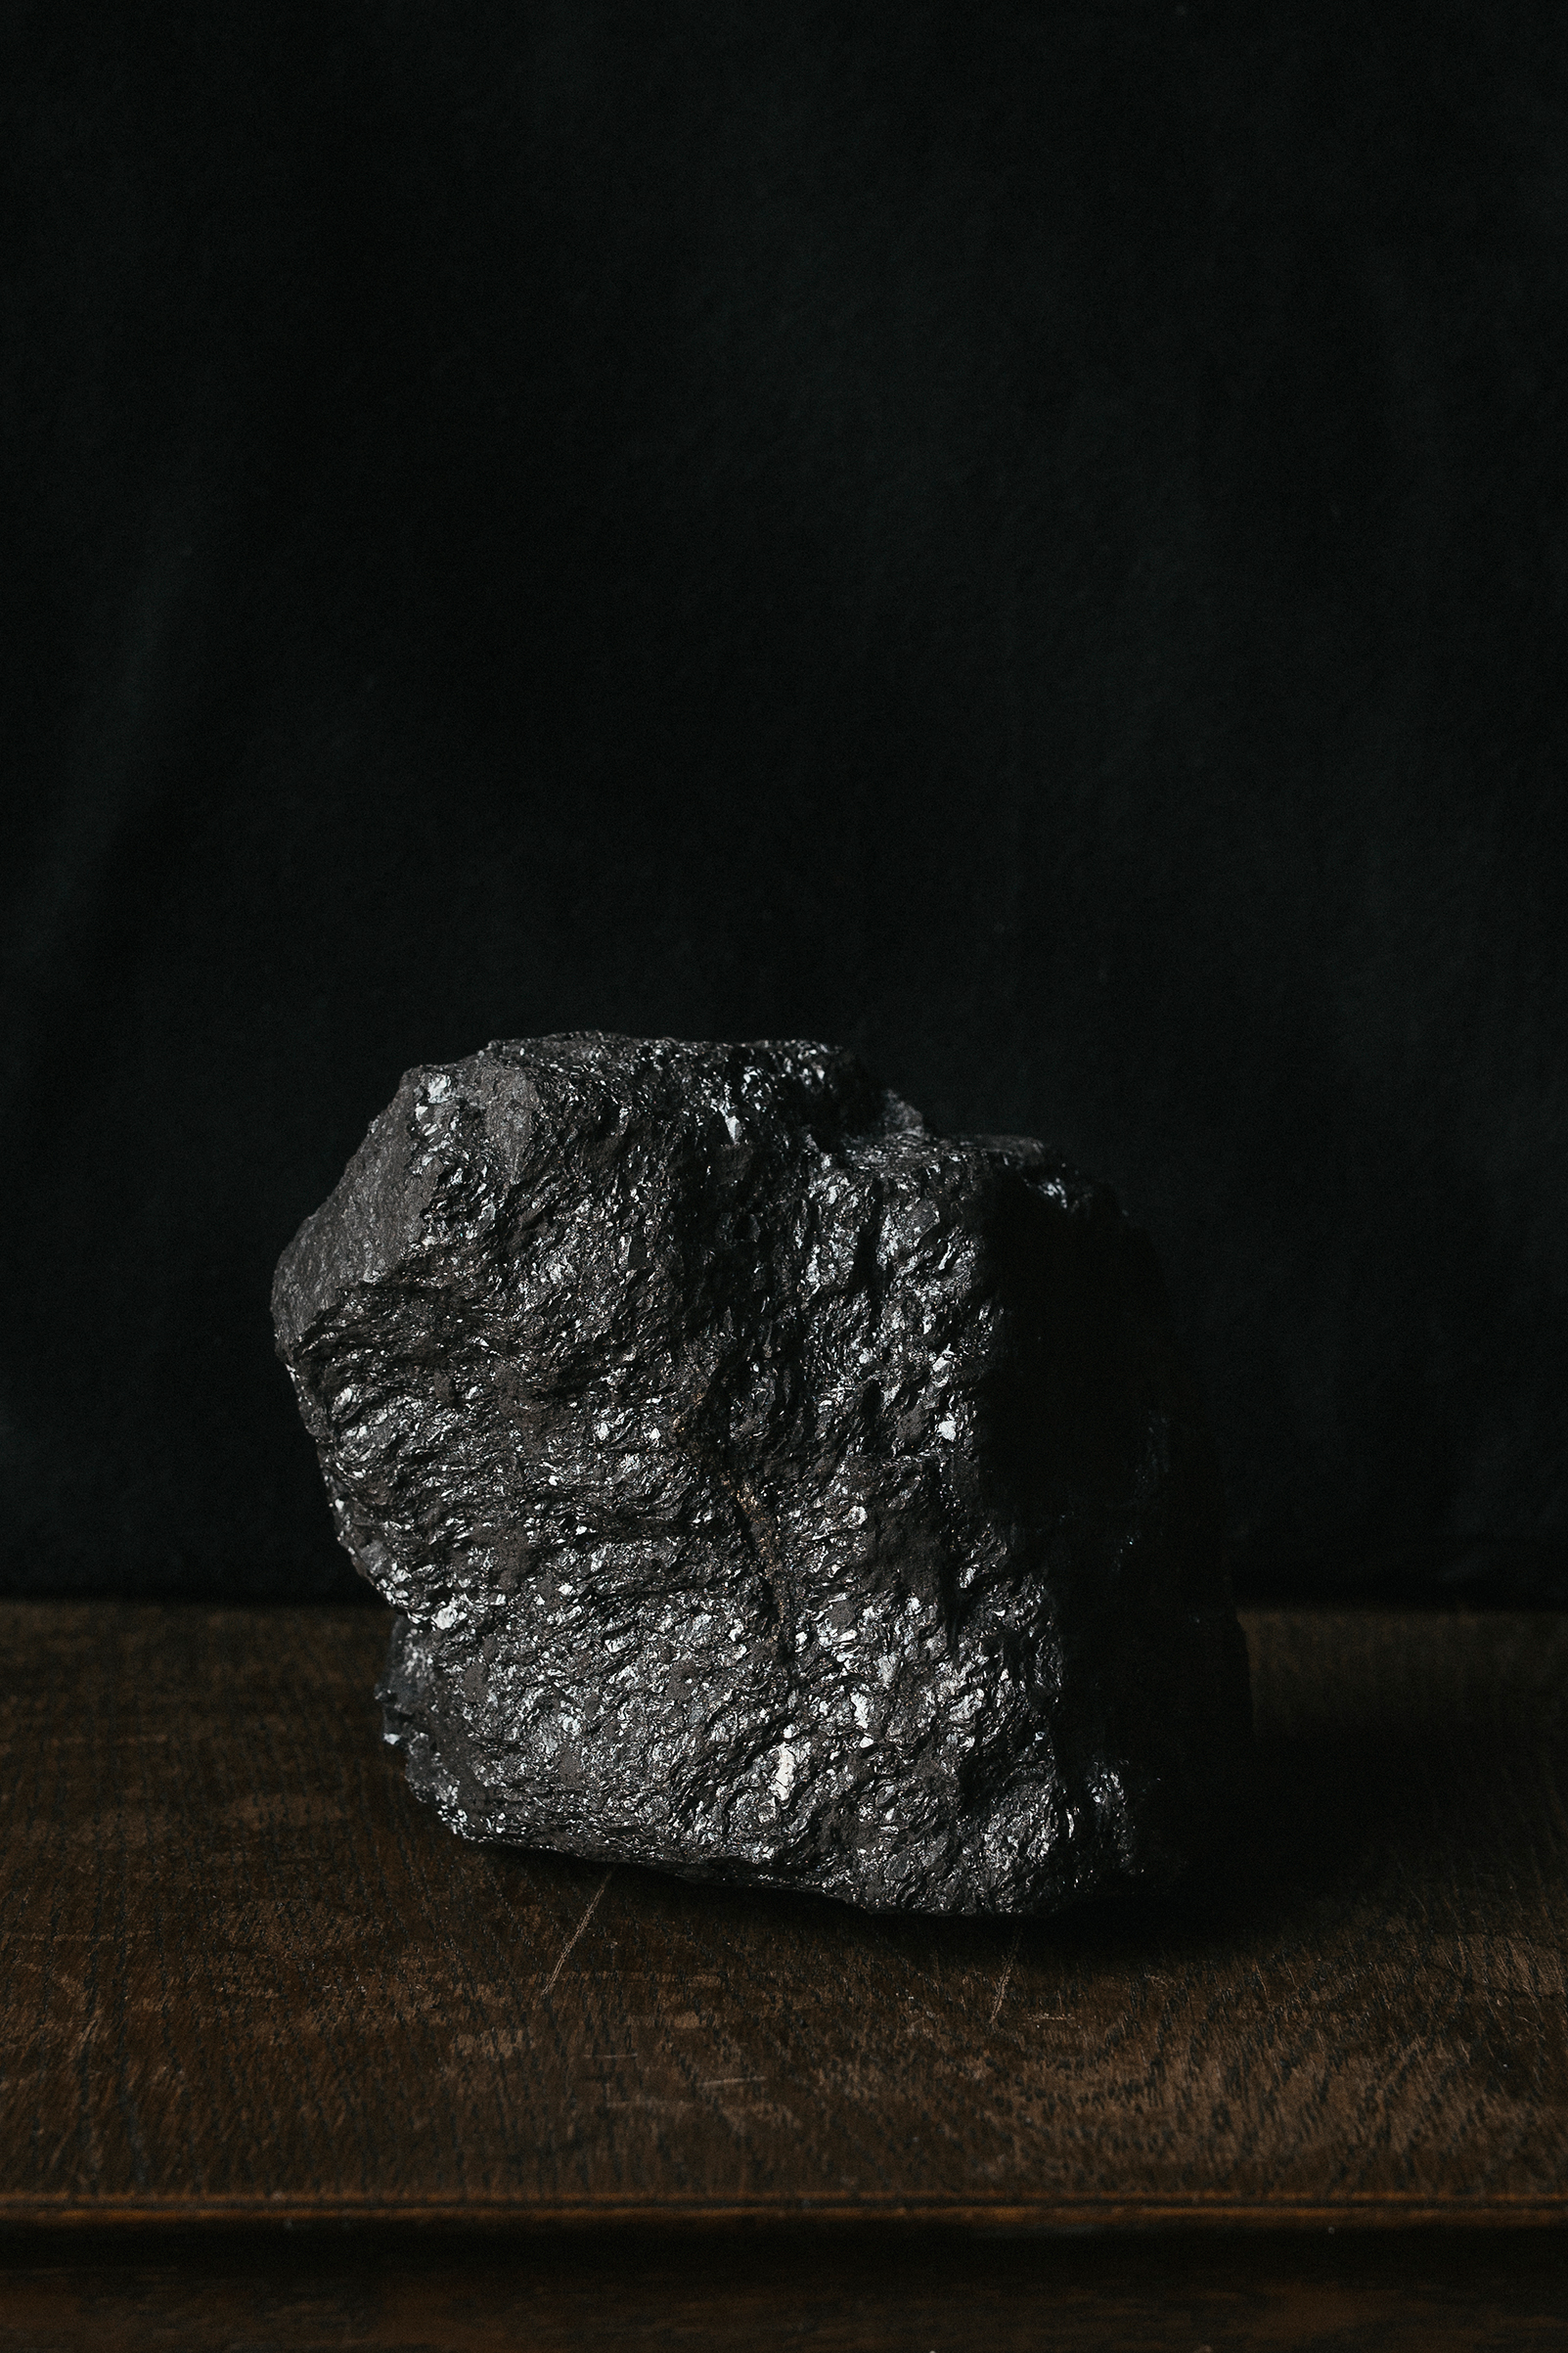 Germany is the world's sixth largest importer of coal; critics of the end of mining say it makes the country dependent on imports from countries with lower environmental regulations and worse labor conditions.